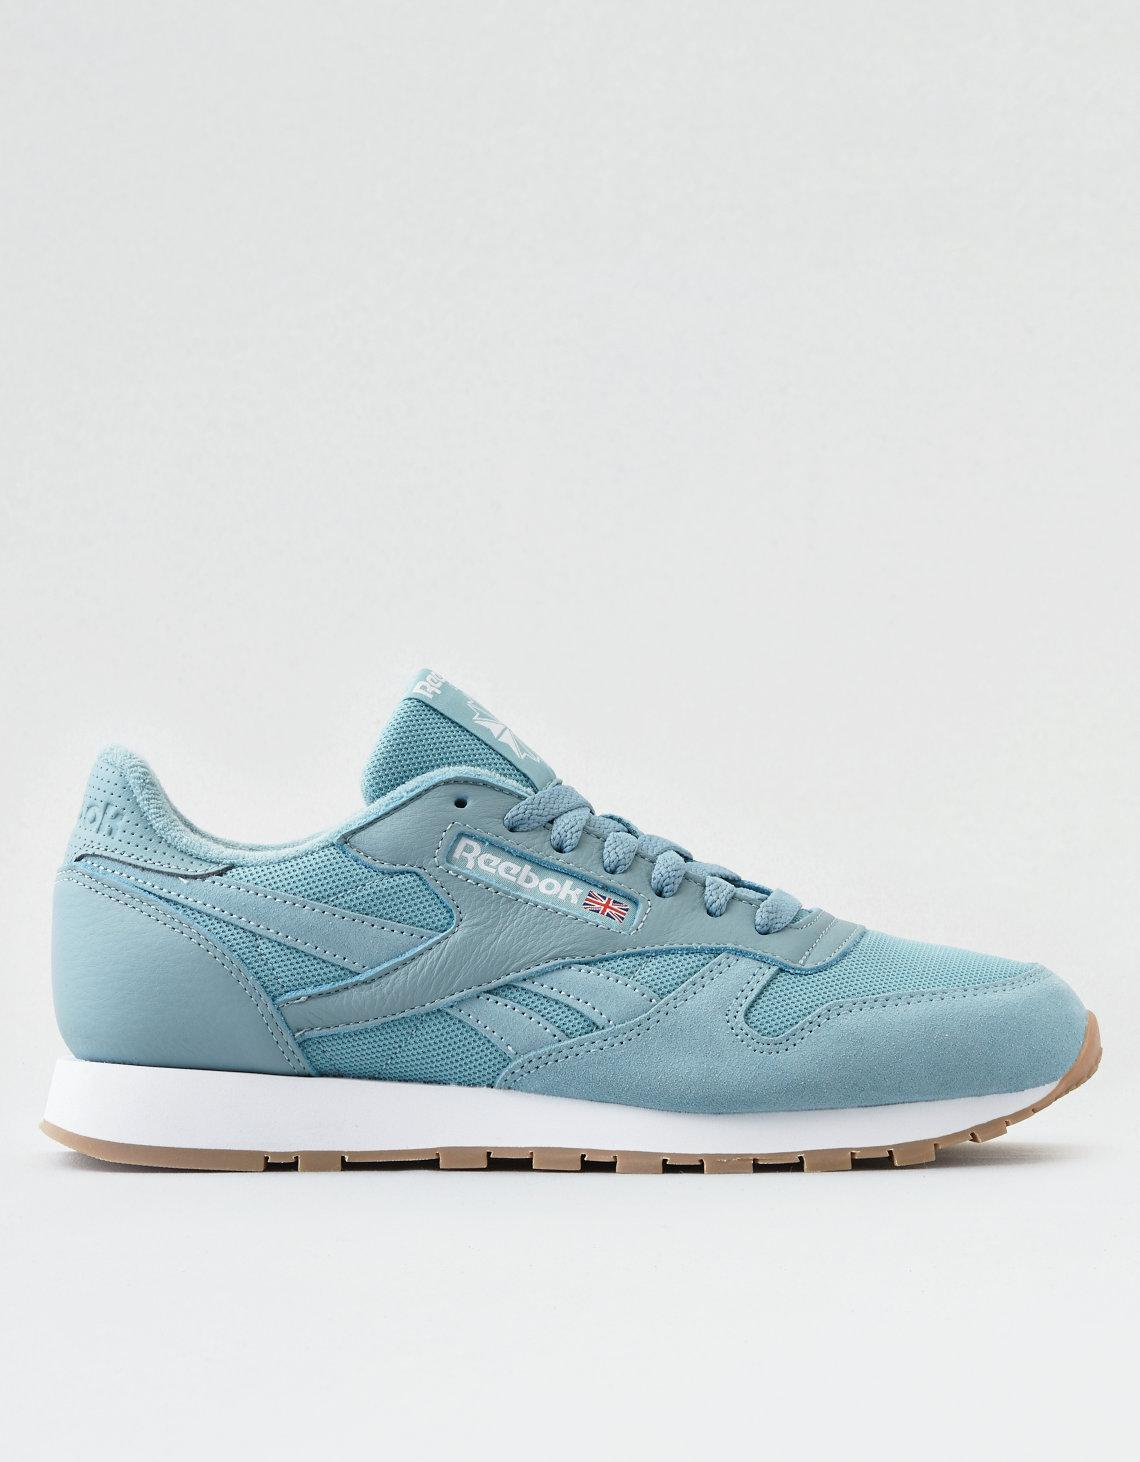 Lyst - American Eagle Reebok Cl Leather Estl Sneaker in Blue for Men 841ff7797